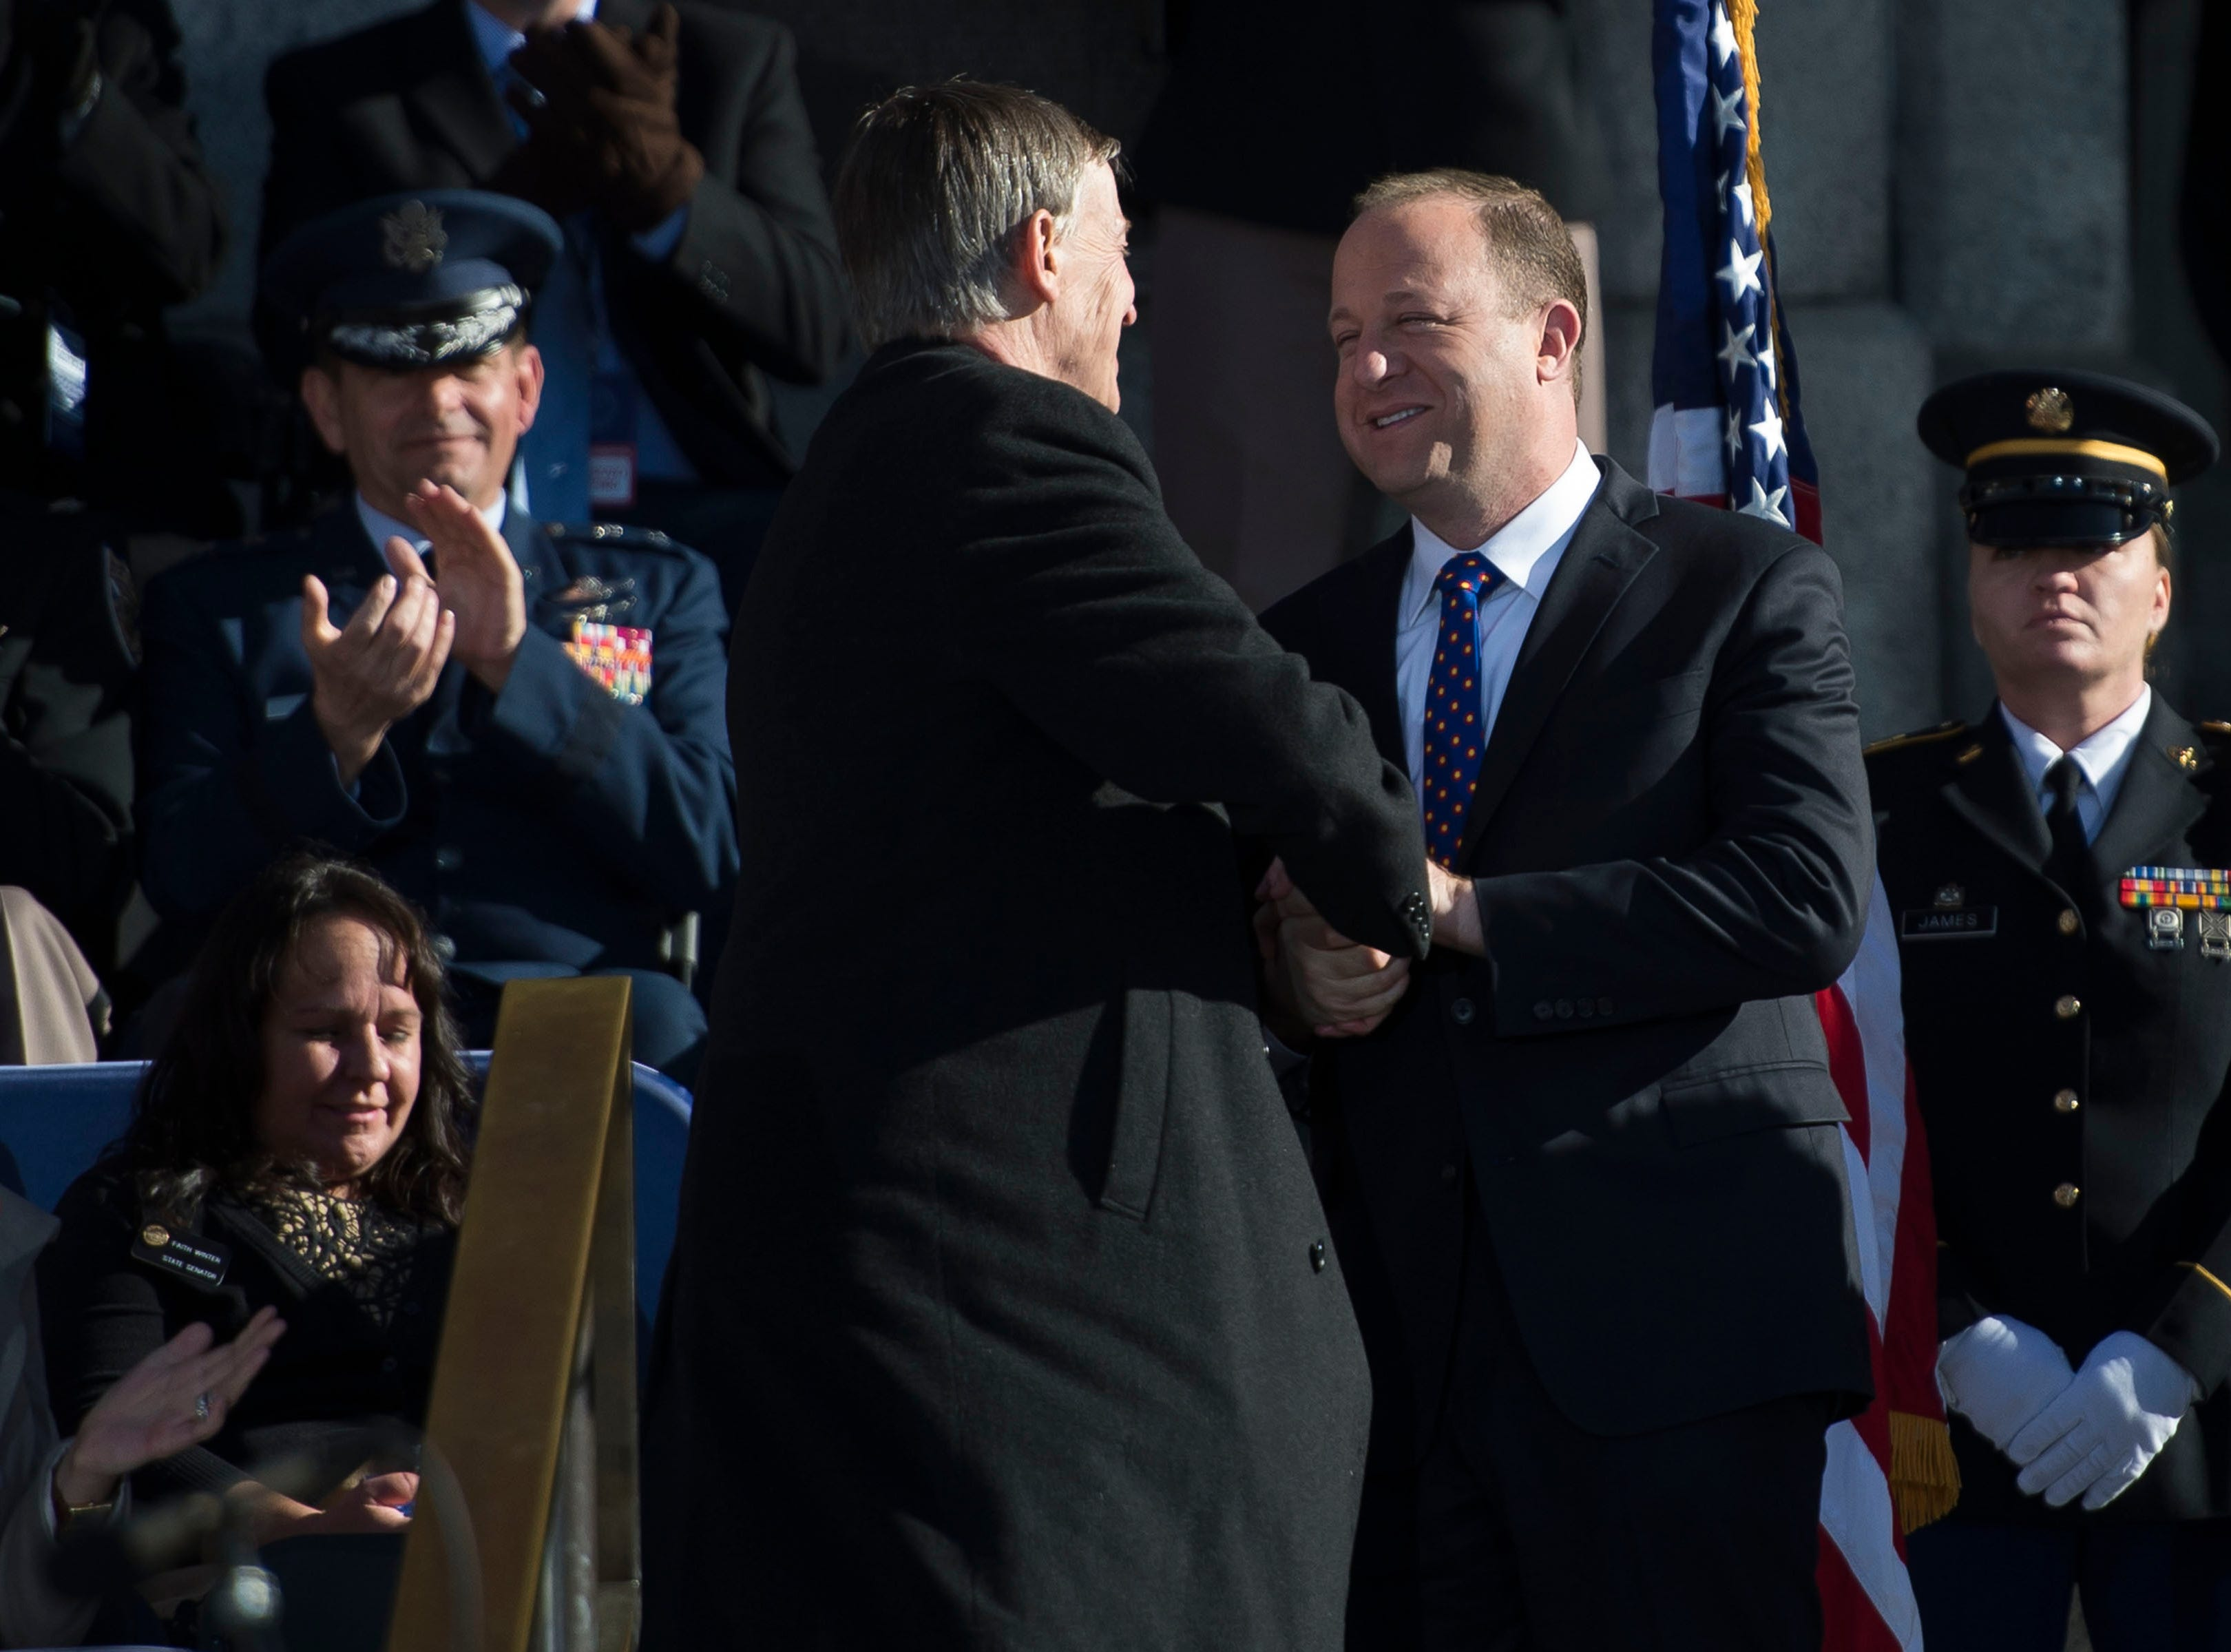 Governor Jared Polis greets outgoing Governor John Hickenlooper before giving his inaugural address on Tuesday, Jan. 8, 2019, in front of the Colorado State Capital building in Denver, Colo.